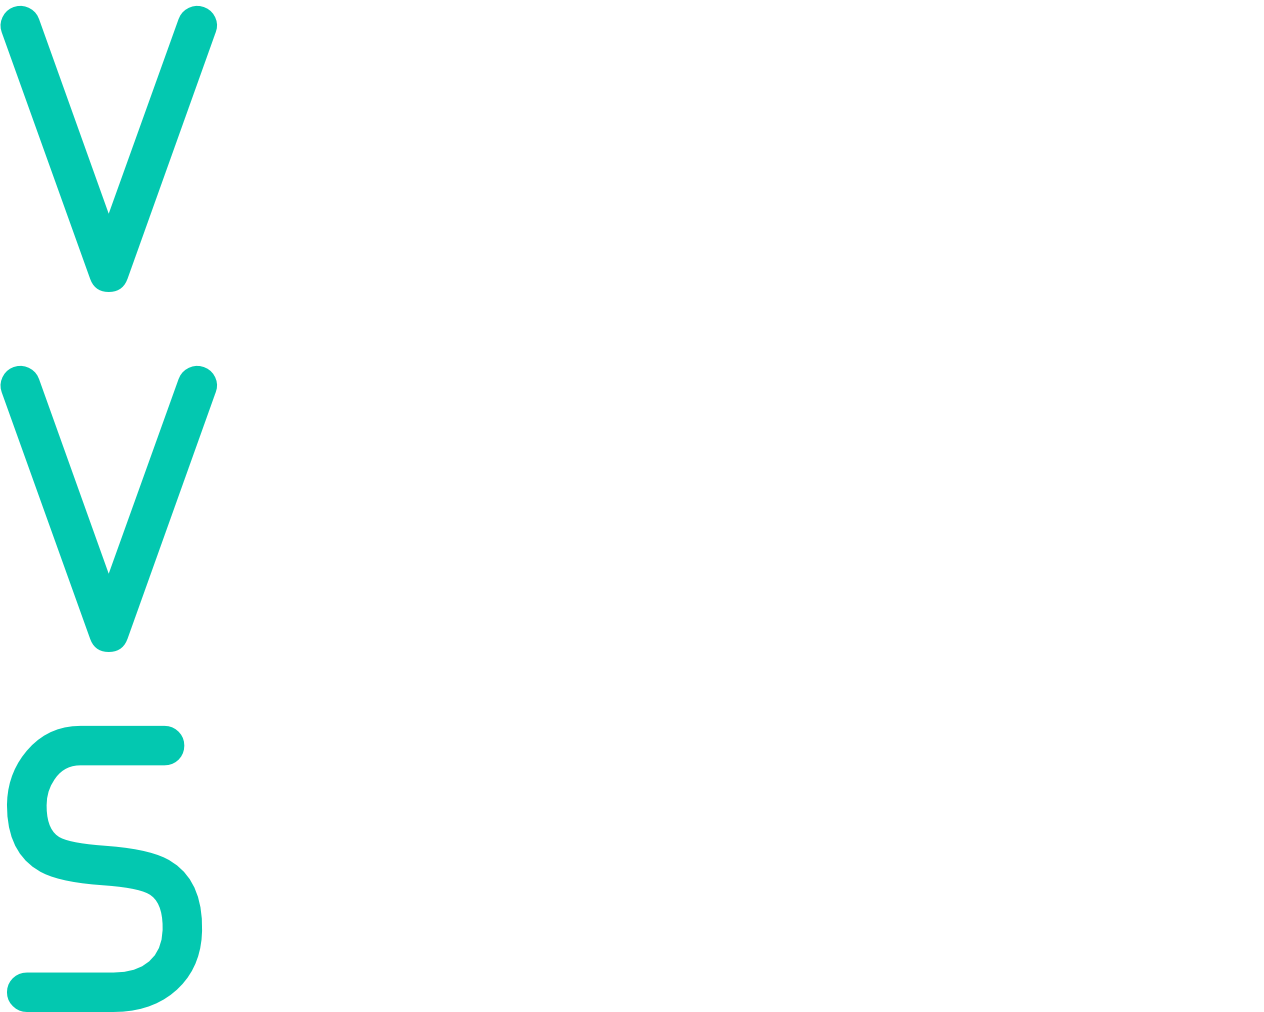 //www.fast-fourriere.com/wp-content/uploads/2019/02/Virtual-Vehicle-Status.png